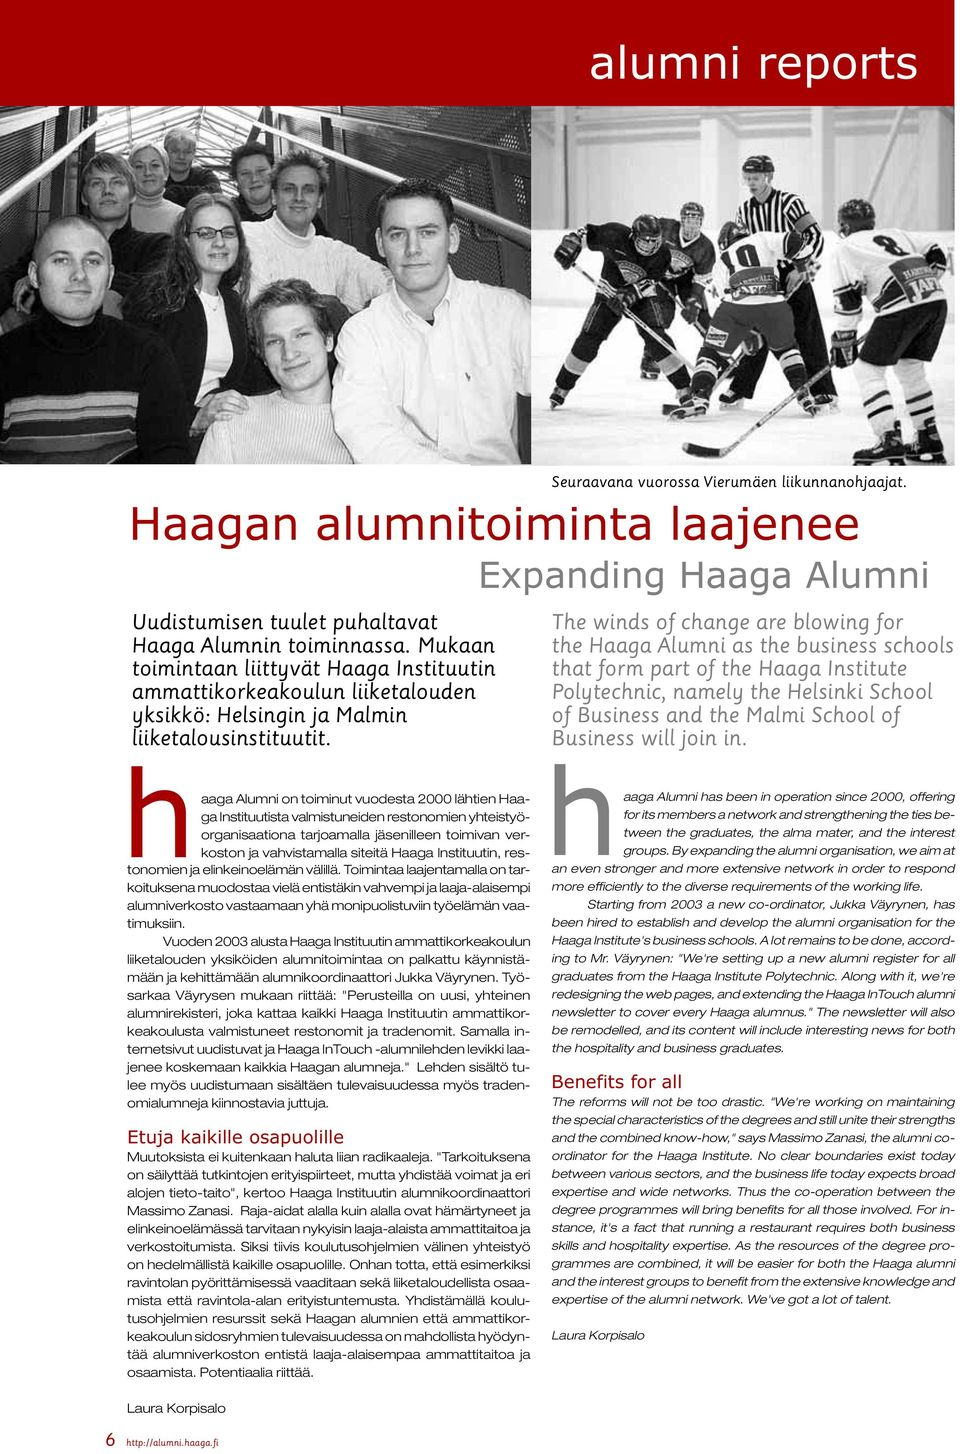 Expanding Haaga Alumni The winds of change are blowing for the Haaga Alumni as the business schools that form part of the Haaga Institute Polytechnic, namely the Helsinki School of Business and the